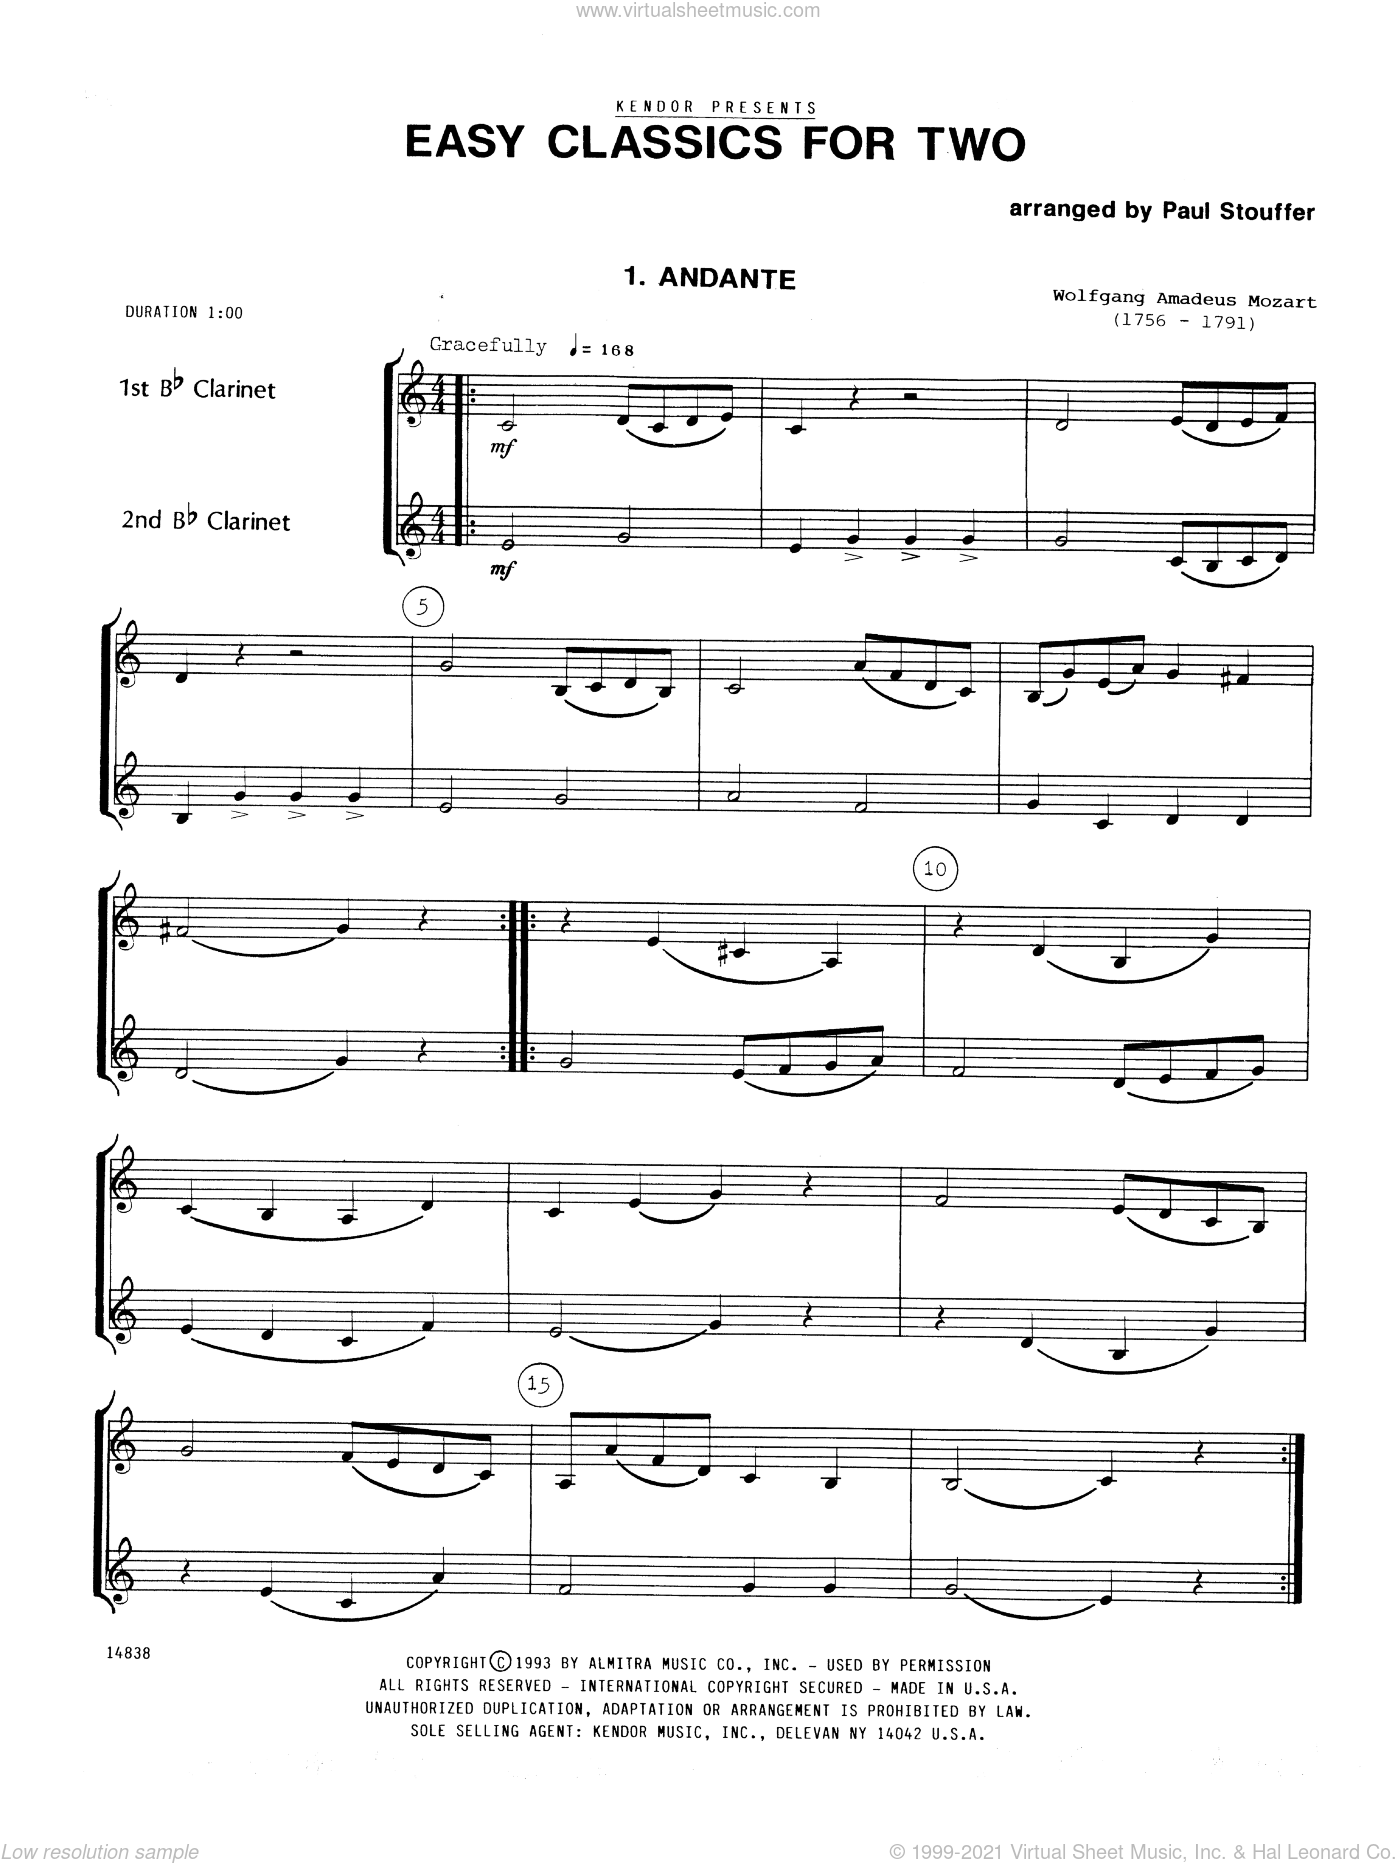 Easy Classics For Two sheet music for two clarinets by Stouffer. Score Image Preview.